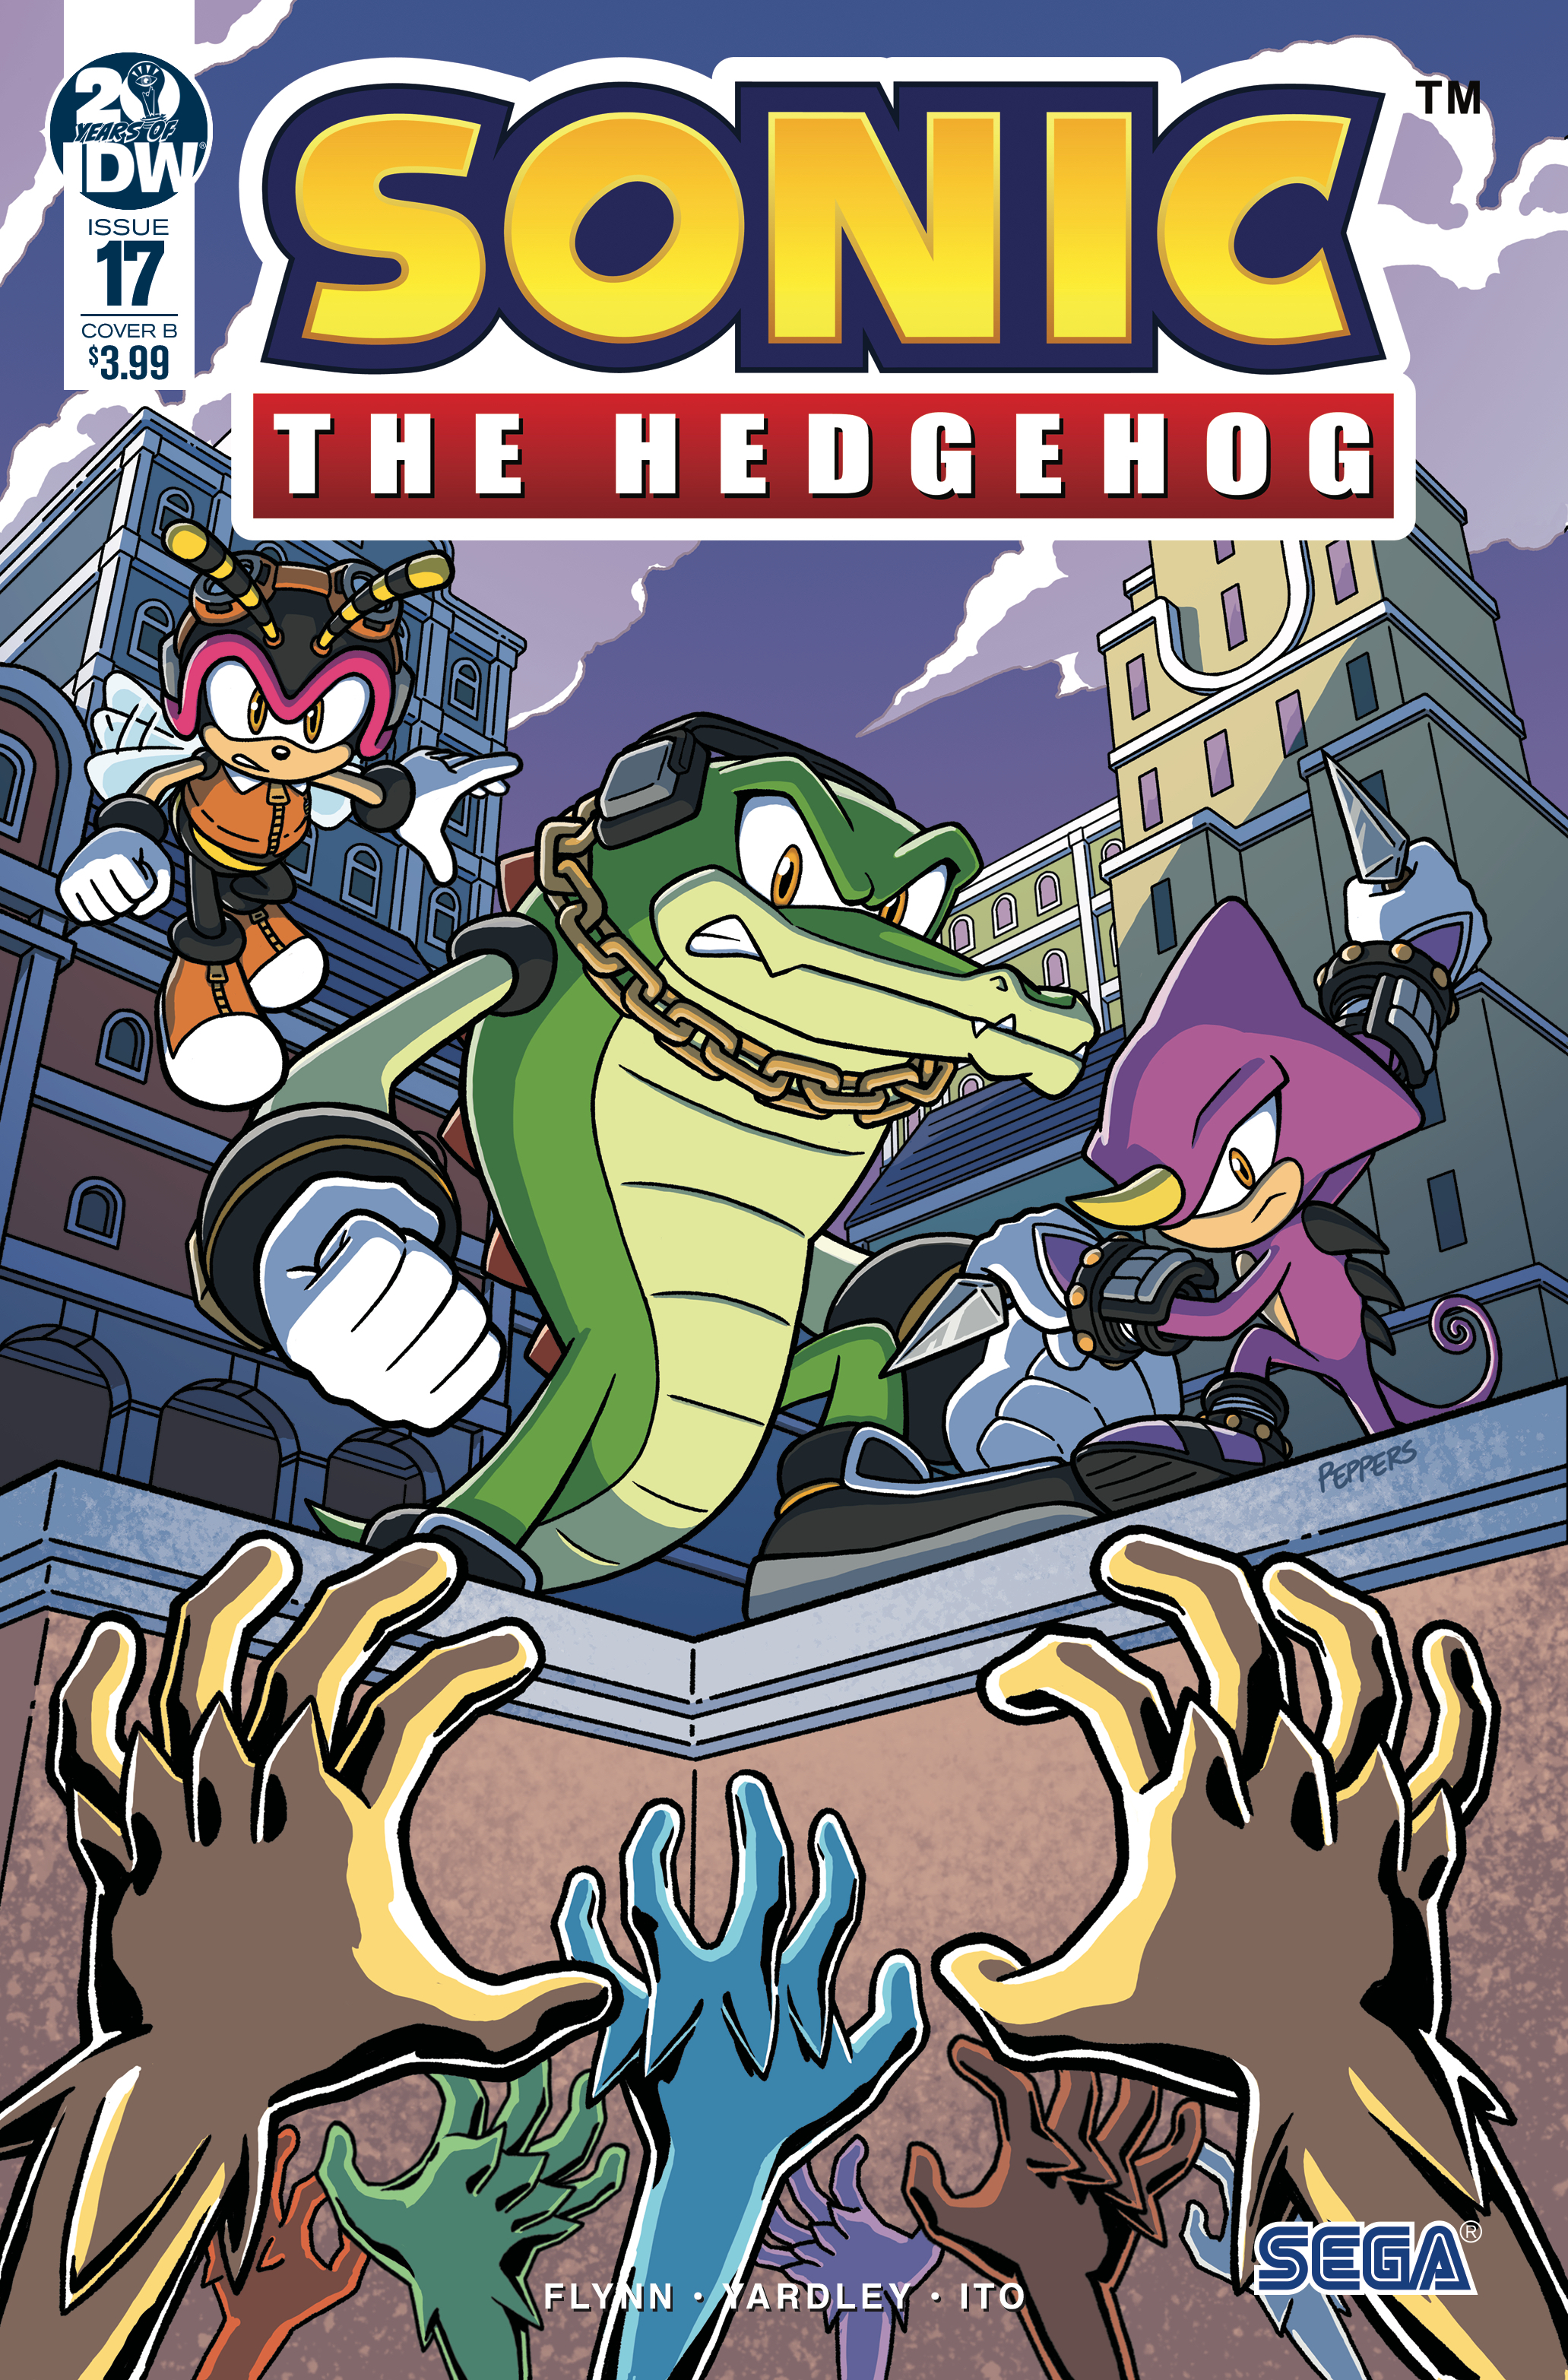 SONIC THE HEDGEHOG #17 CVR B PEPPERS